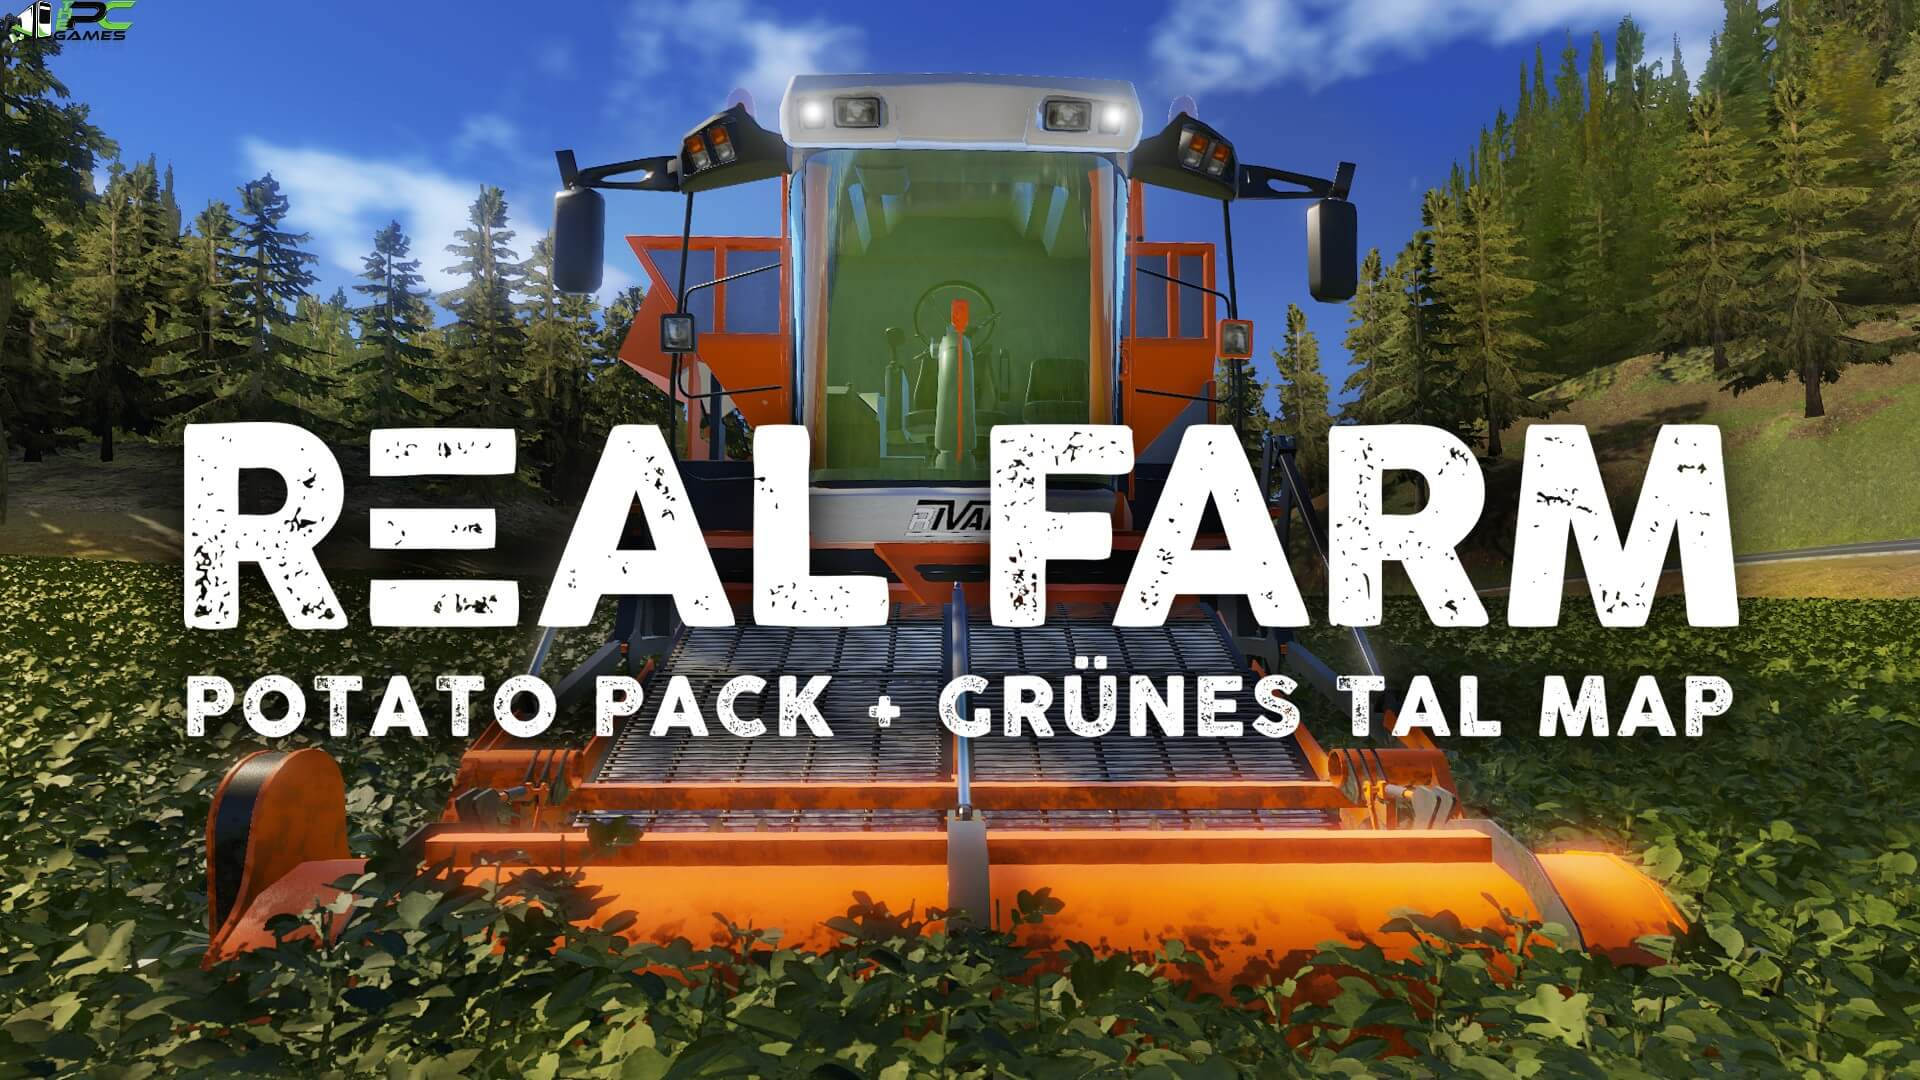 Real Farm Grunes Tal Map and Potato PackFree Download